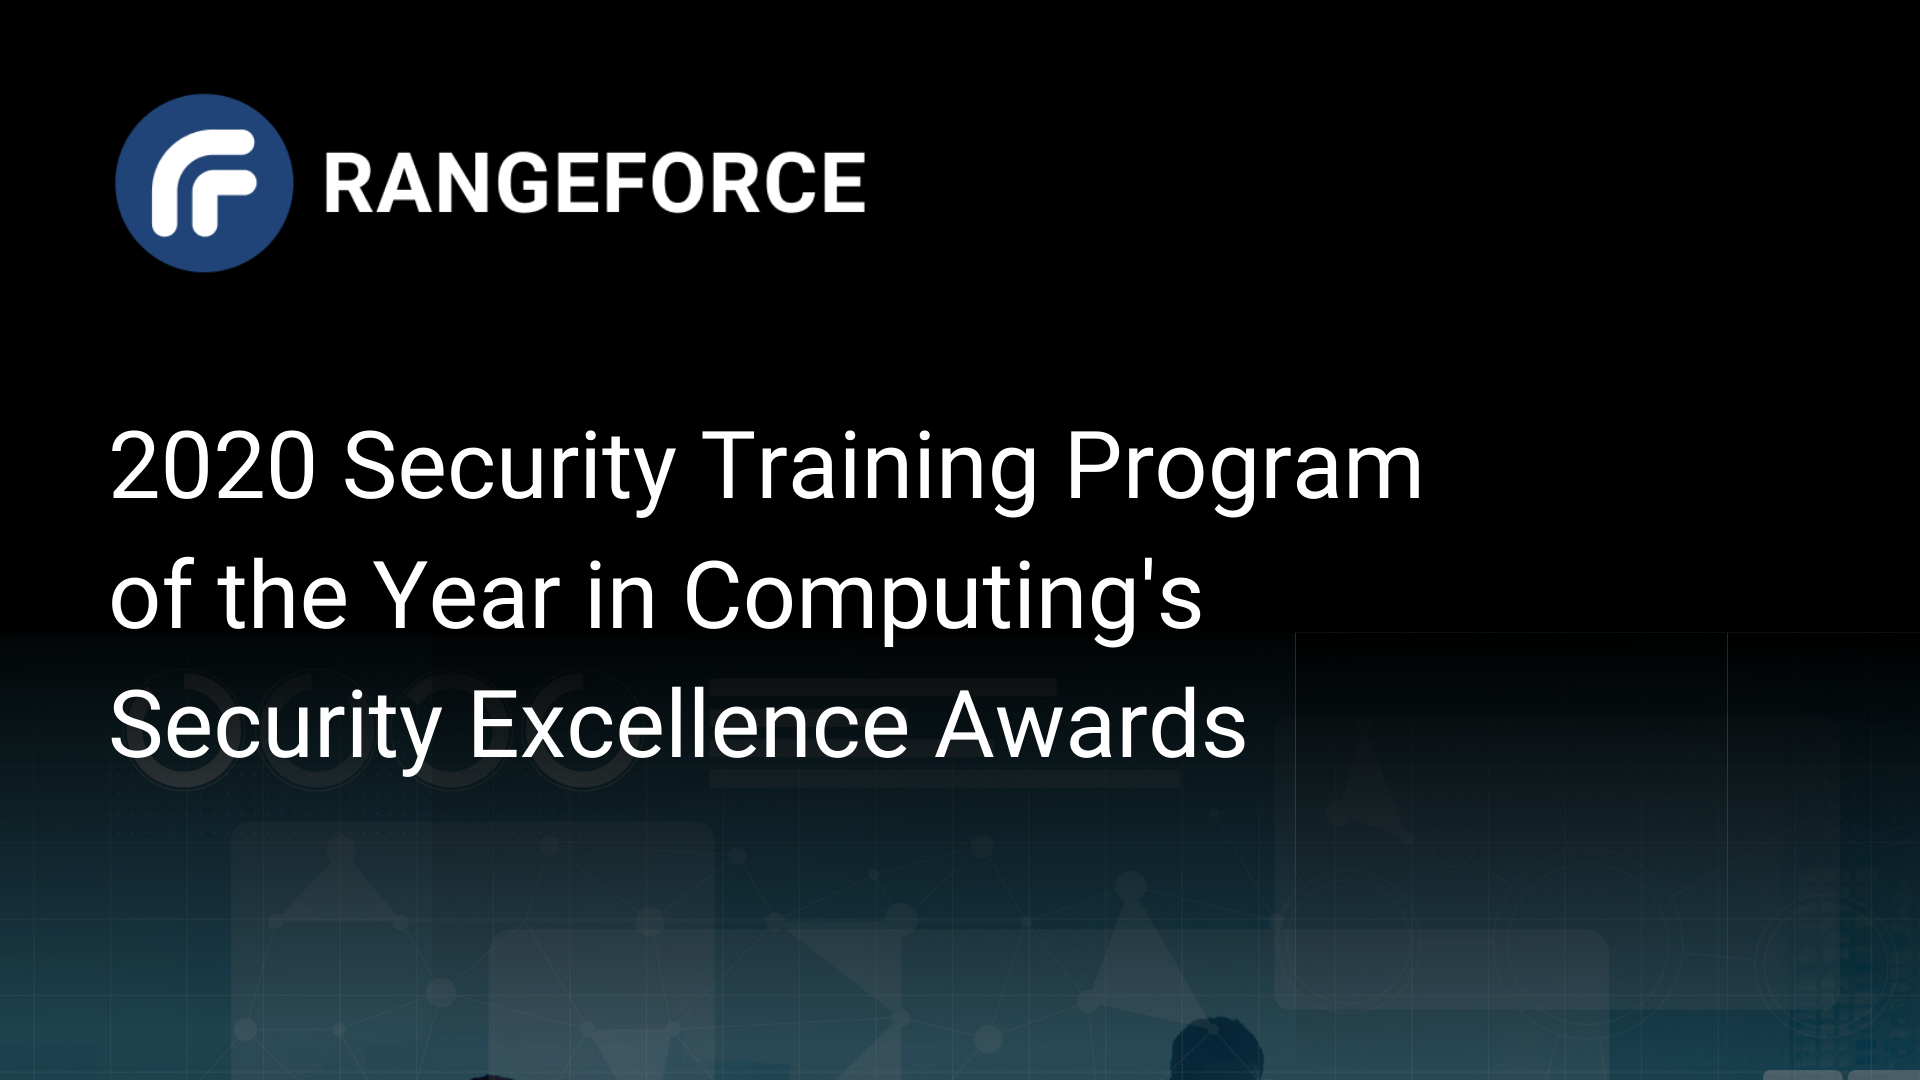 RangeForce Named Security Training Program of the Year in Computing Security Excellence Awards